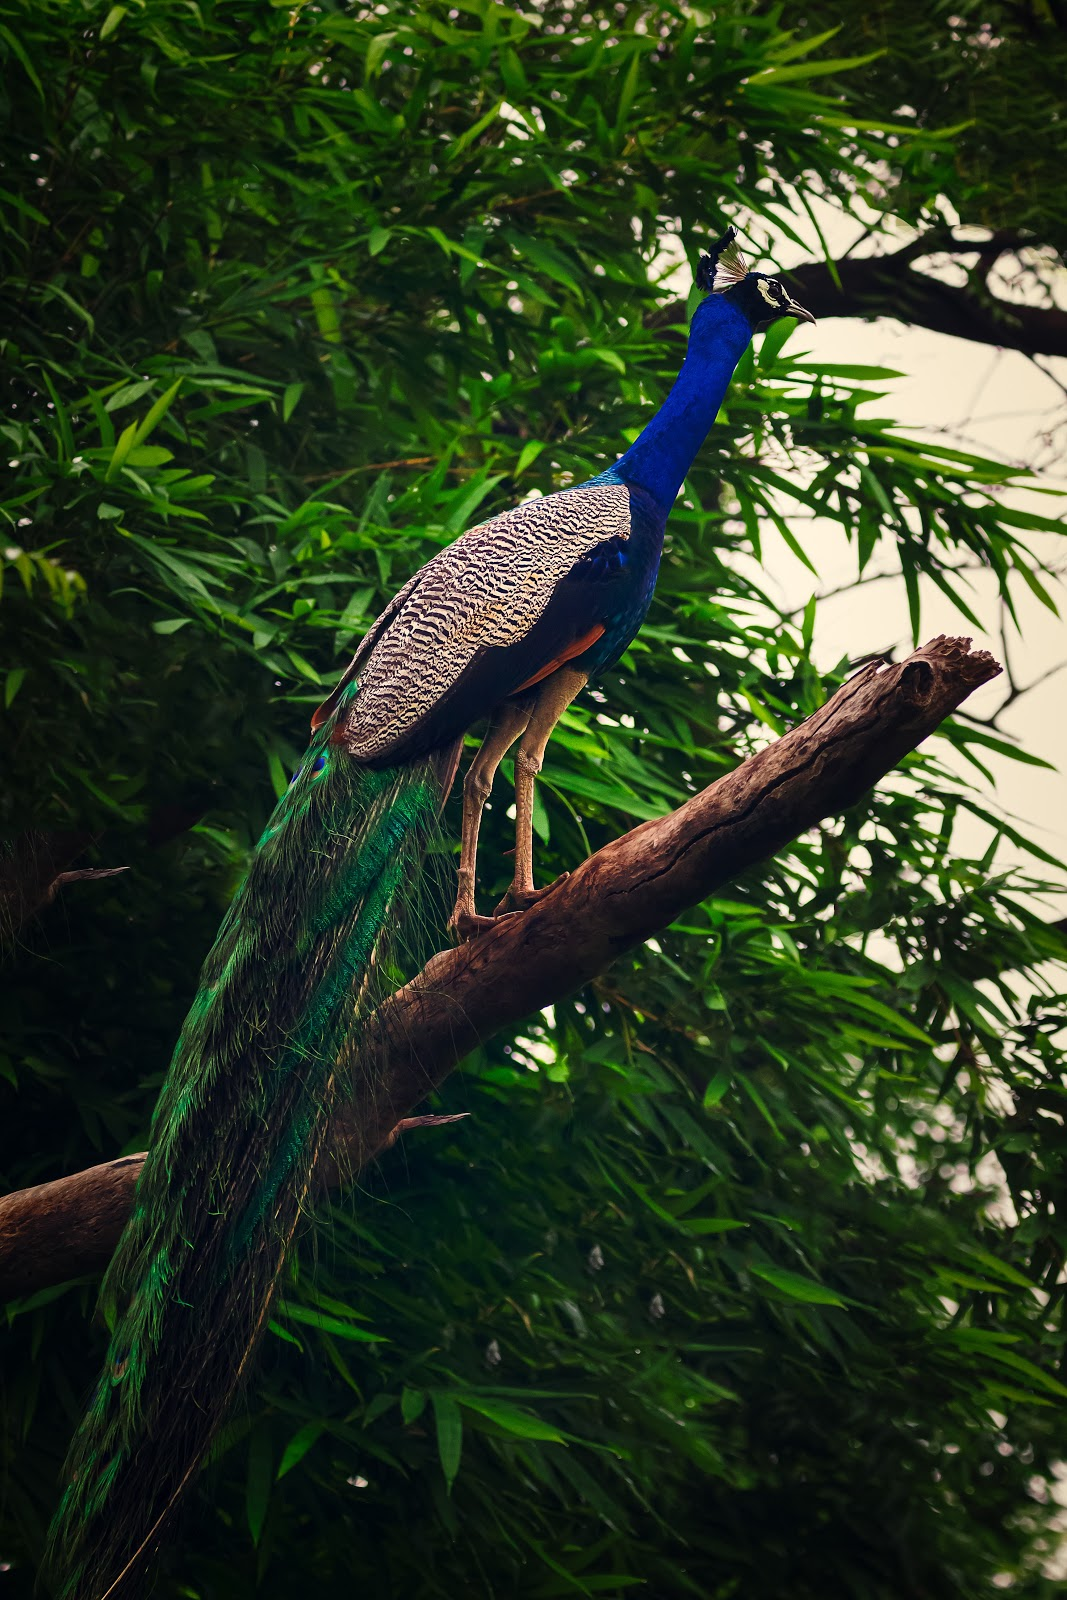 peacock-on-brown-tree-branch-pictures